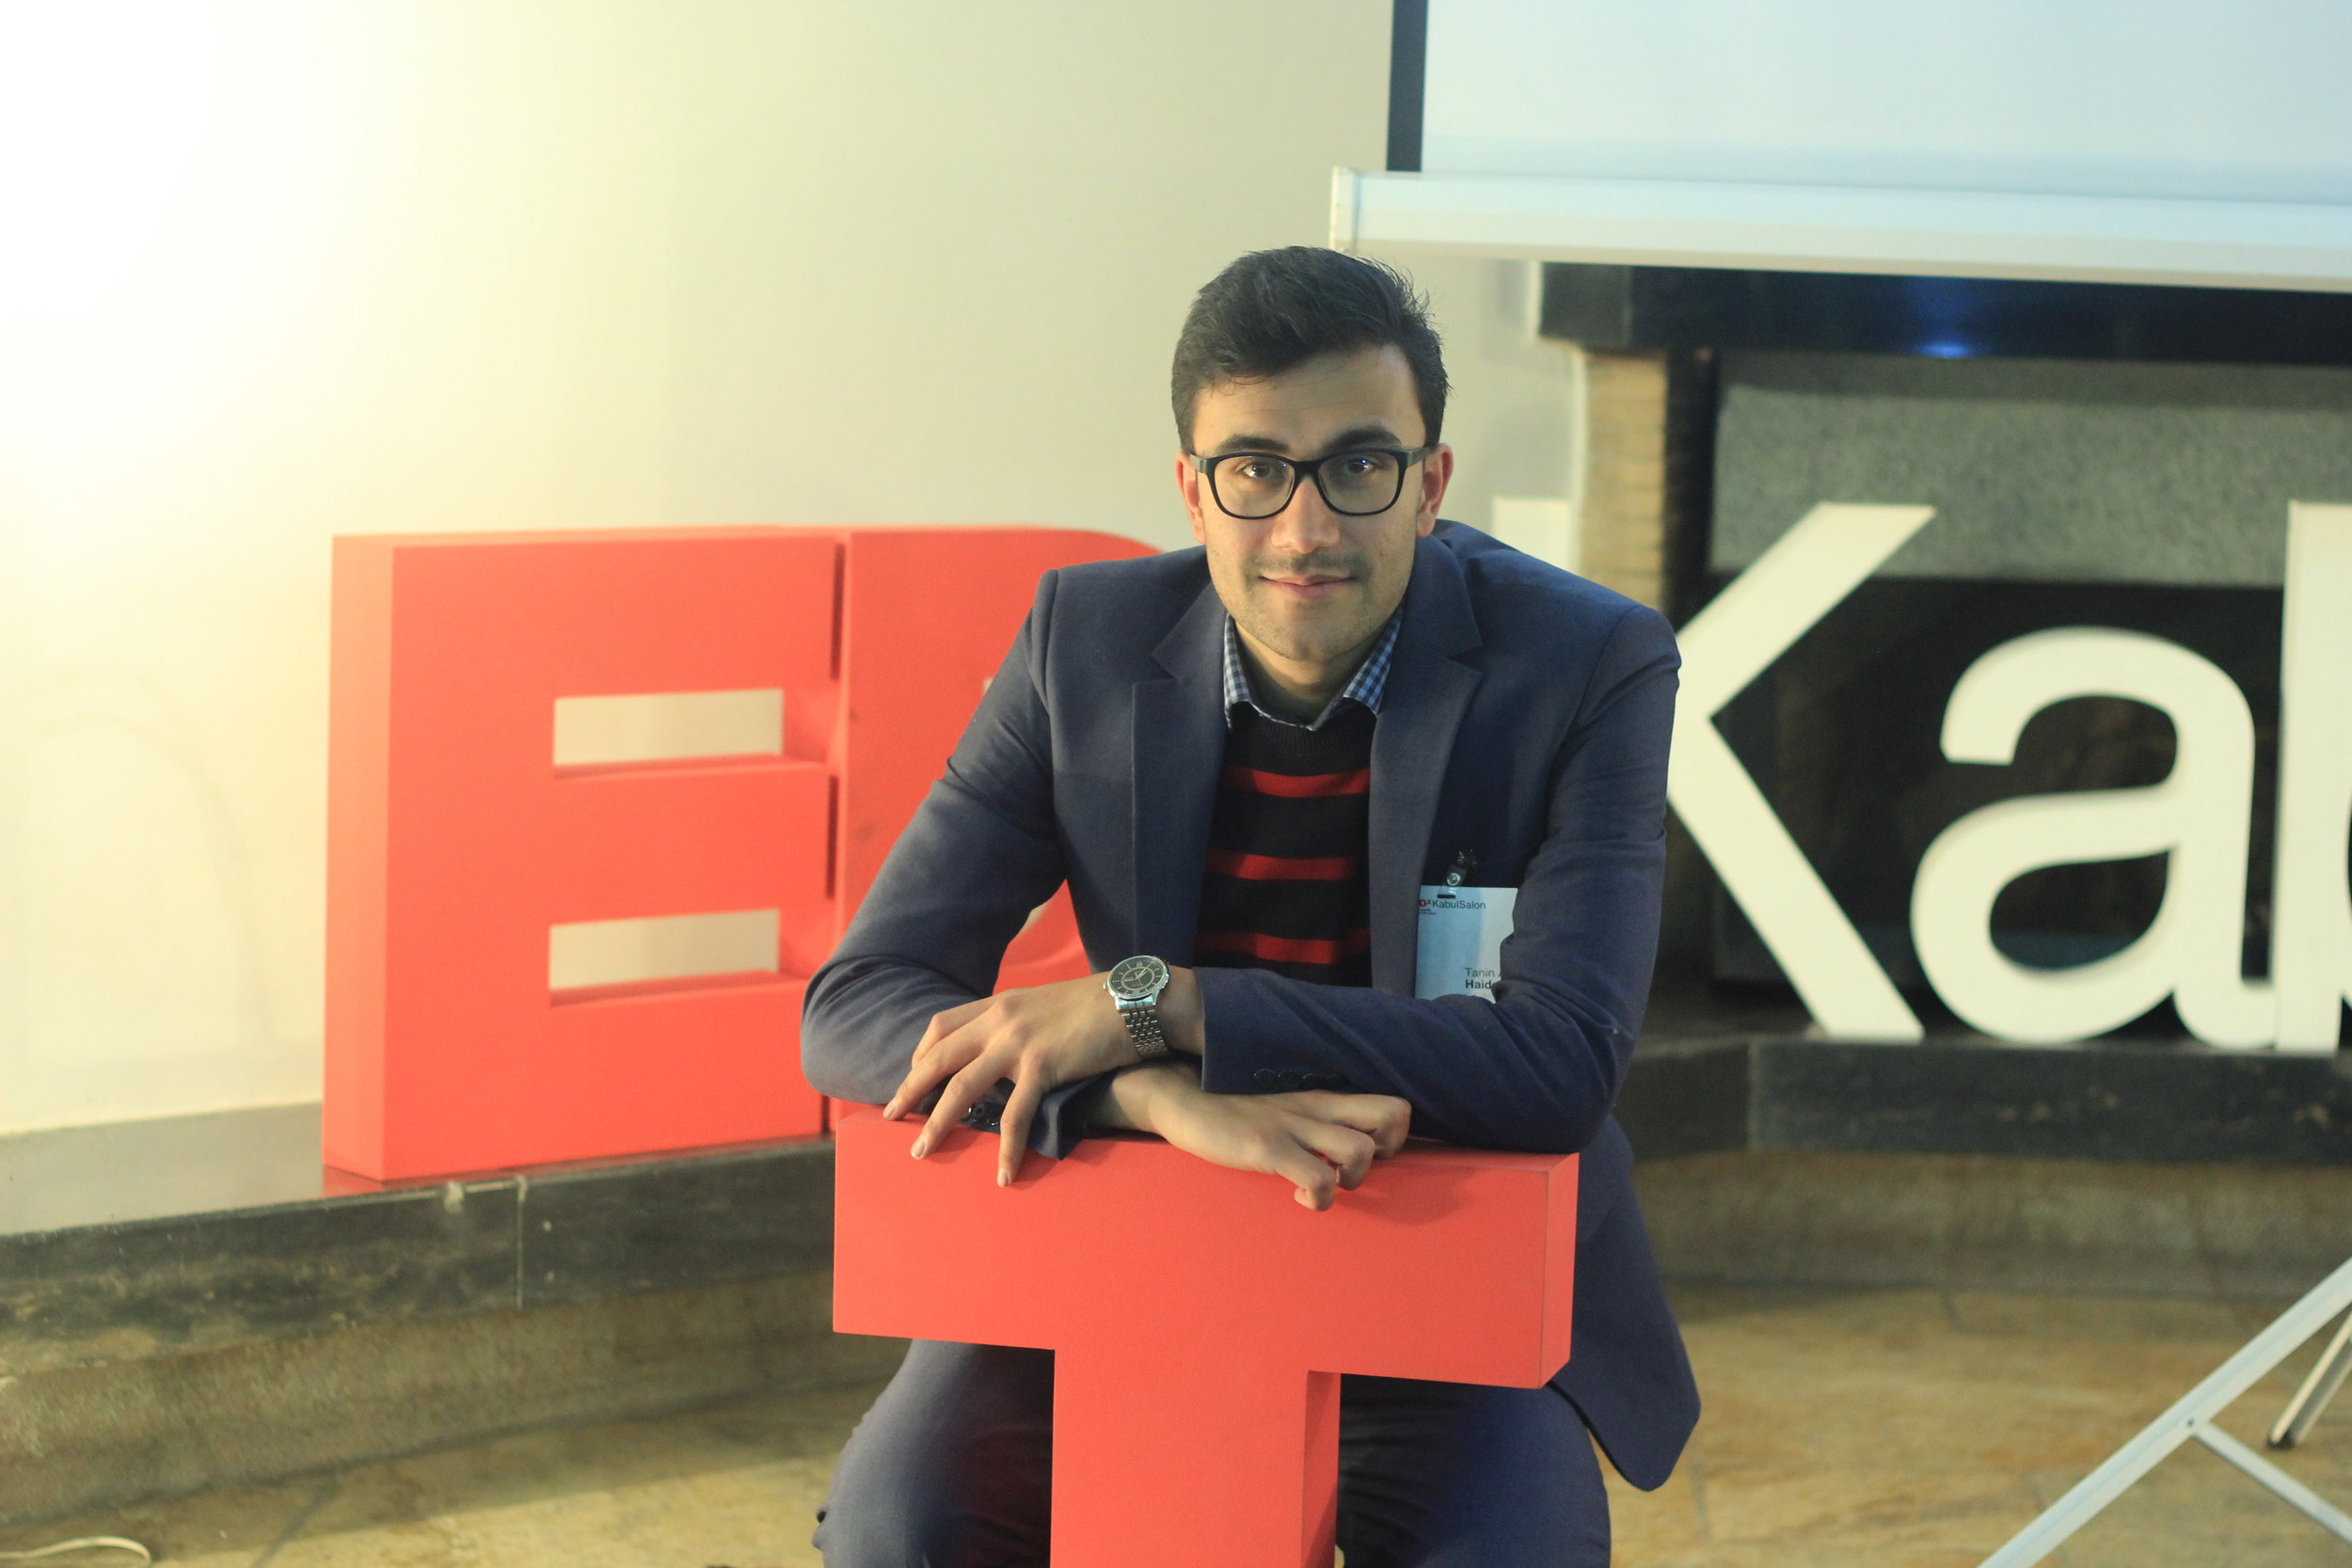 Tanin Haidary - Co-Organizer  Ph.D. Candidate in Planning, Design and the Built Environment  Favorite TED talk: Inside the mind of a master procrastinator